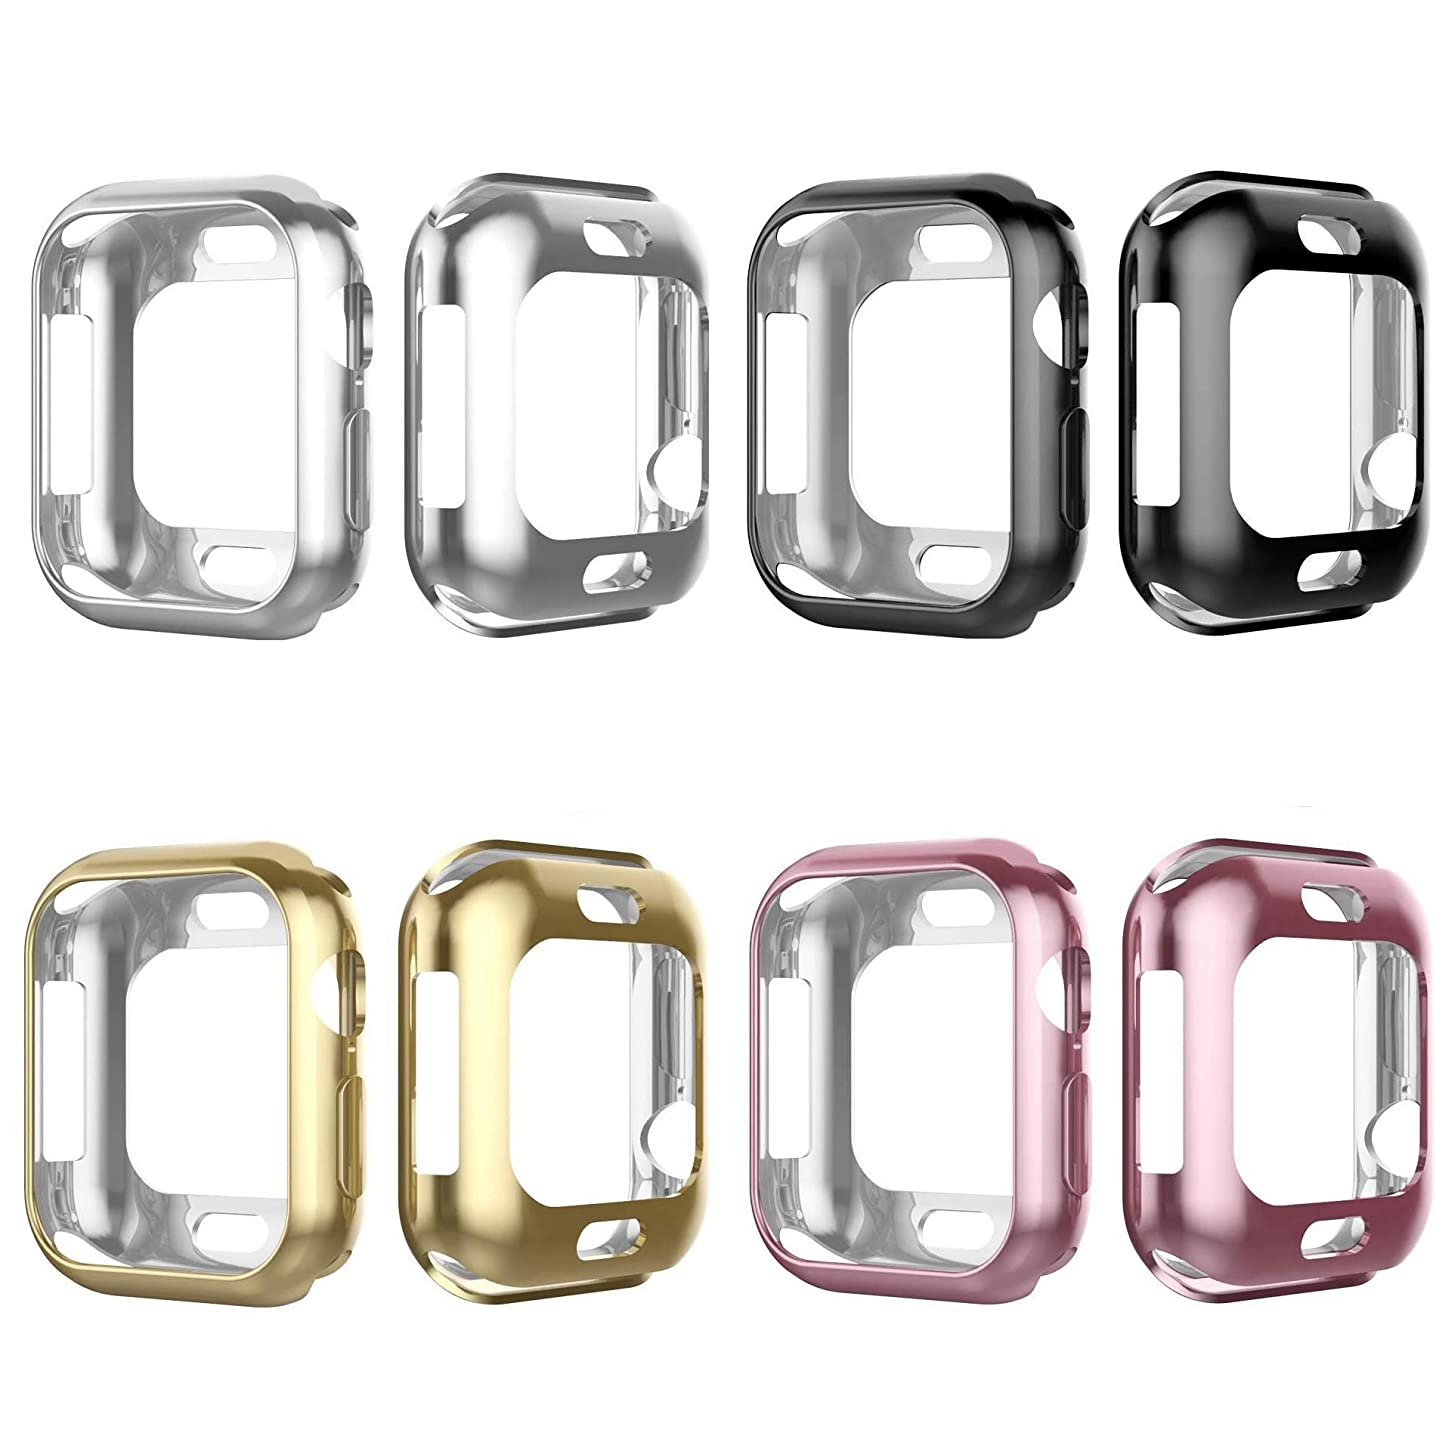 Tech Express 4 Pack Metallic Chrome Bumper Protection Case for Apple Watch Series 4 [iWatch Cover] Black, Silver, Rose Gold, Gold 40mm, 44mm Rugged Skin Cover Shockproof Lot of 4 (44mm)